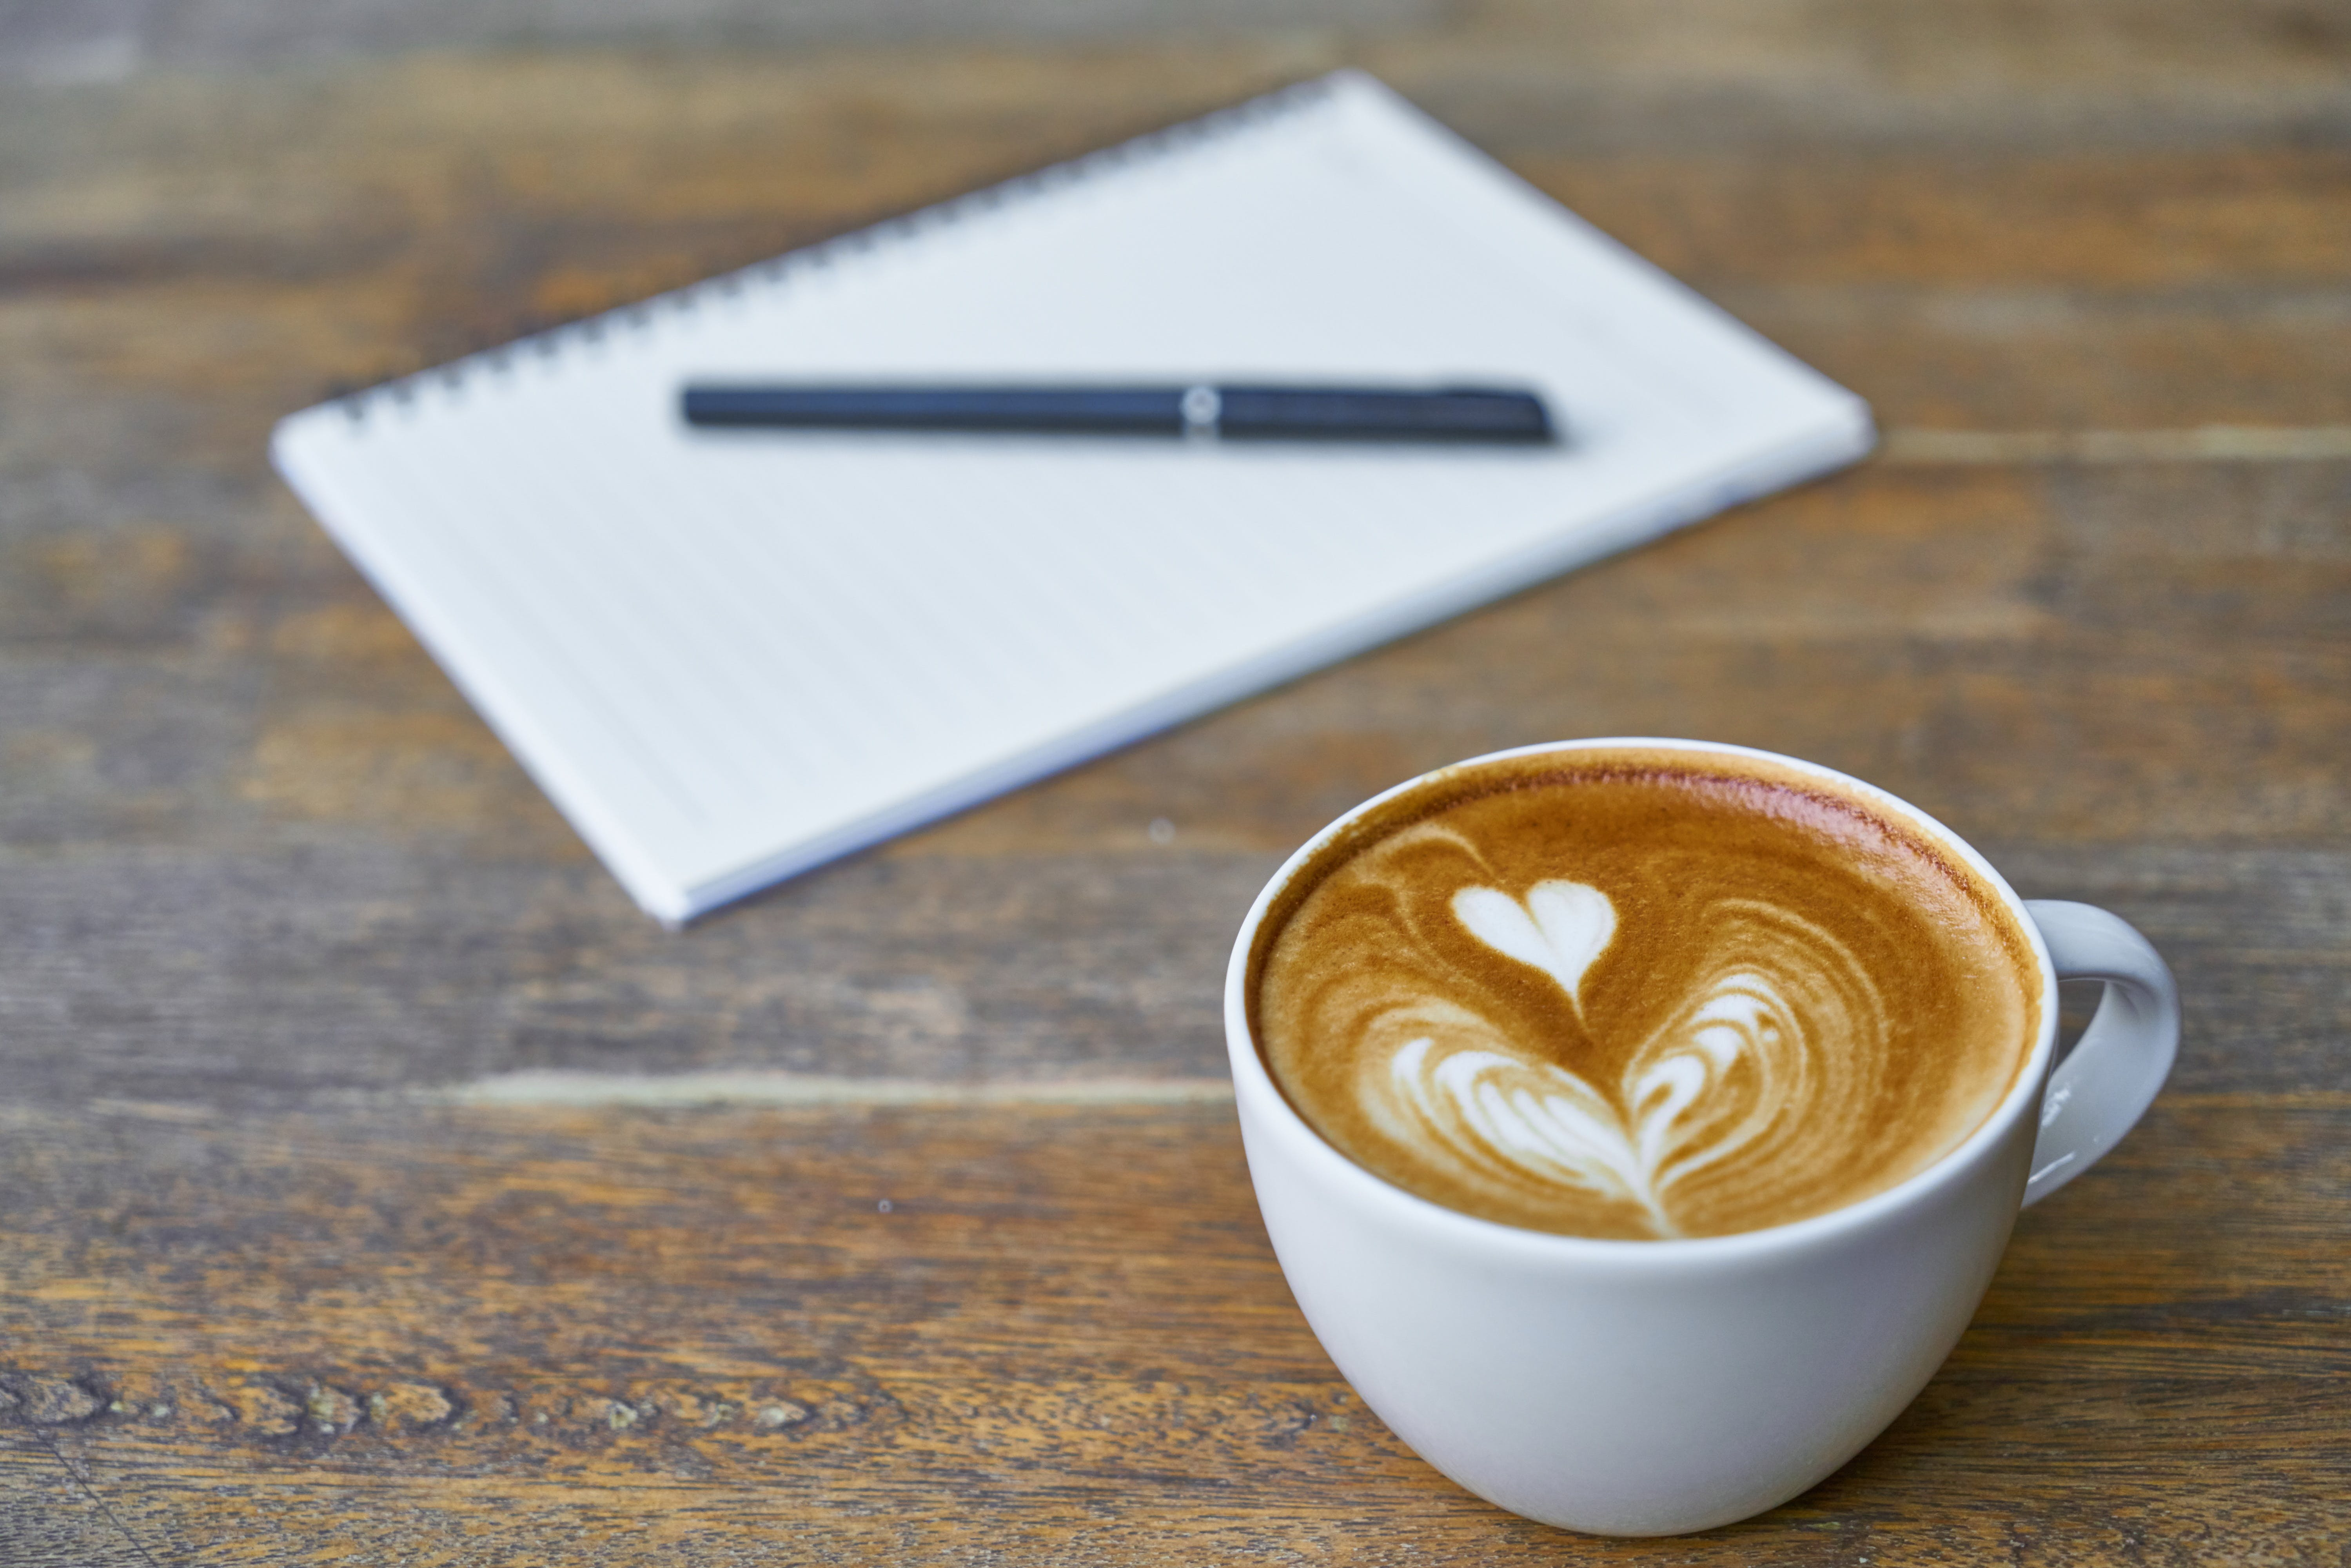 Ceramic Cup Filled With Coffee Beside Notebook and Ballpoint Pen